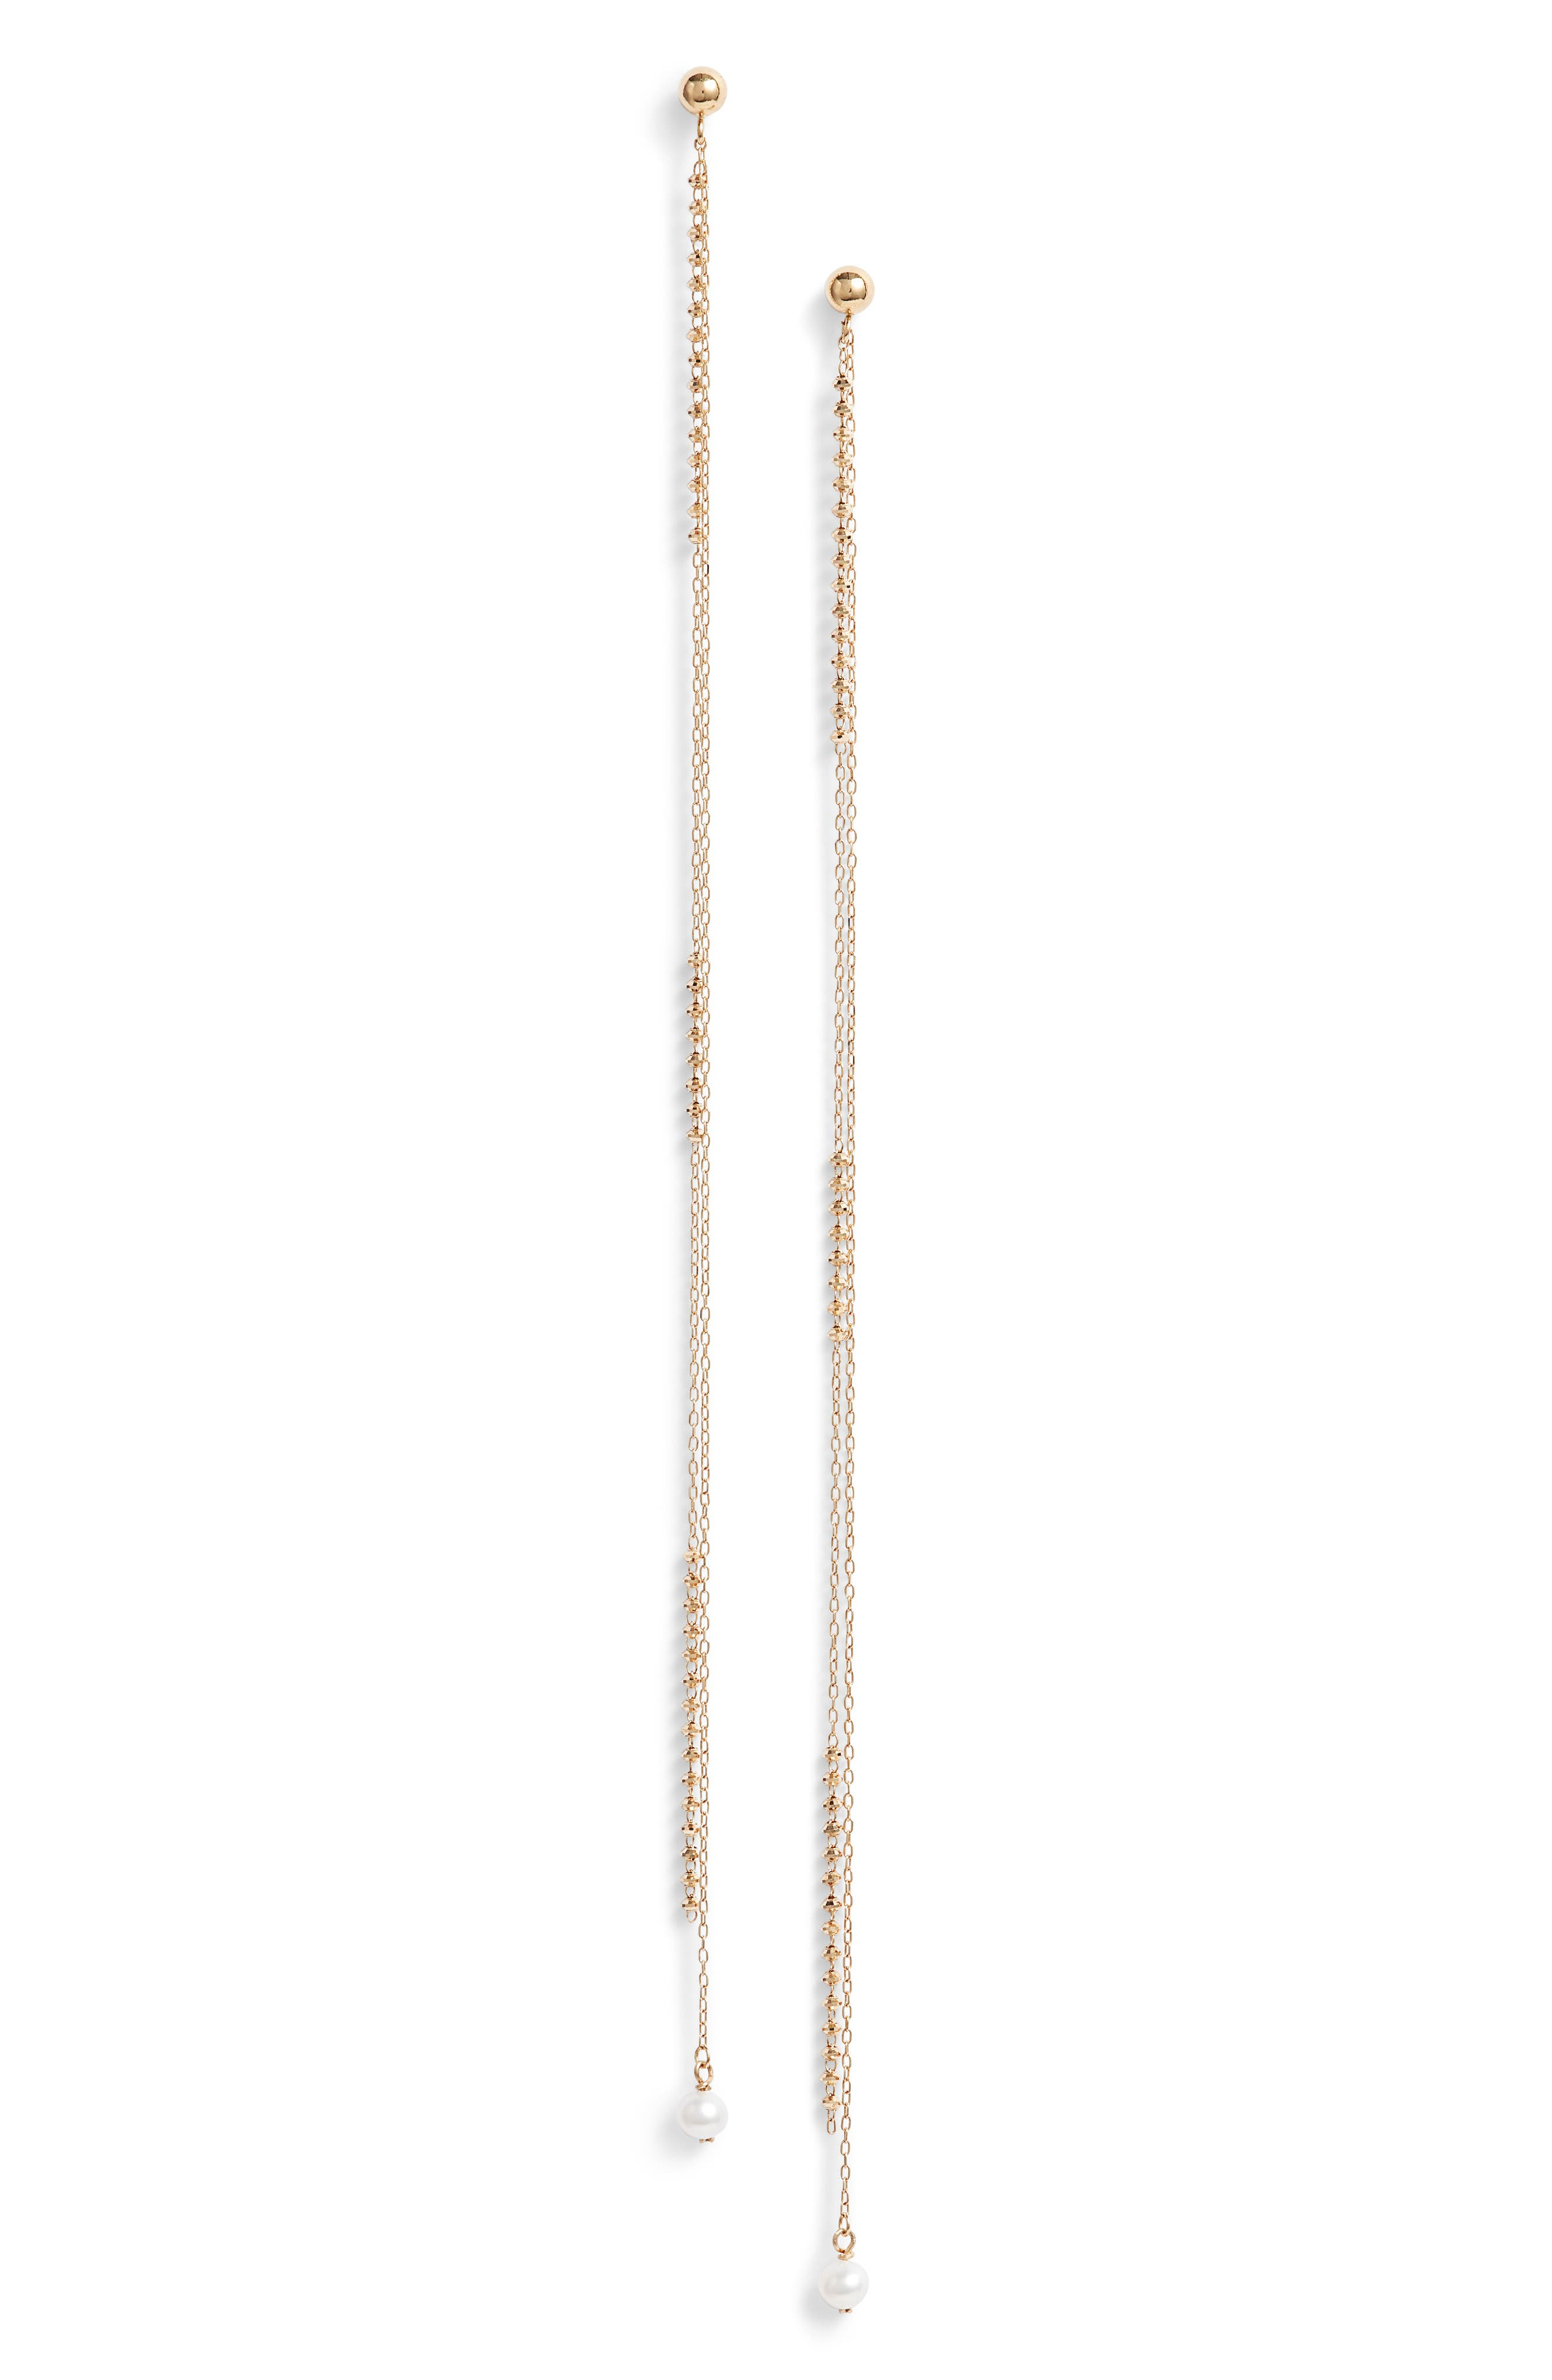 Shimmer Double Chain Baby Pearl Long Drop Earrings,                             Main thumbnail 1, color,                             Yellow Gold/ White Pearl